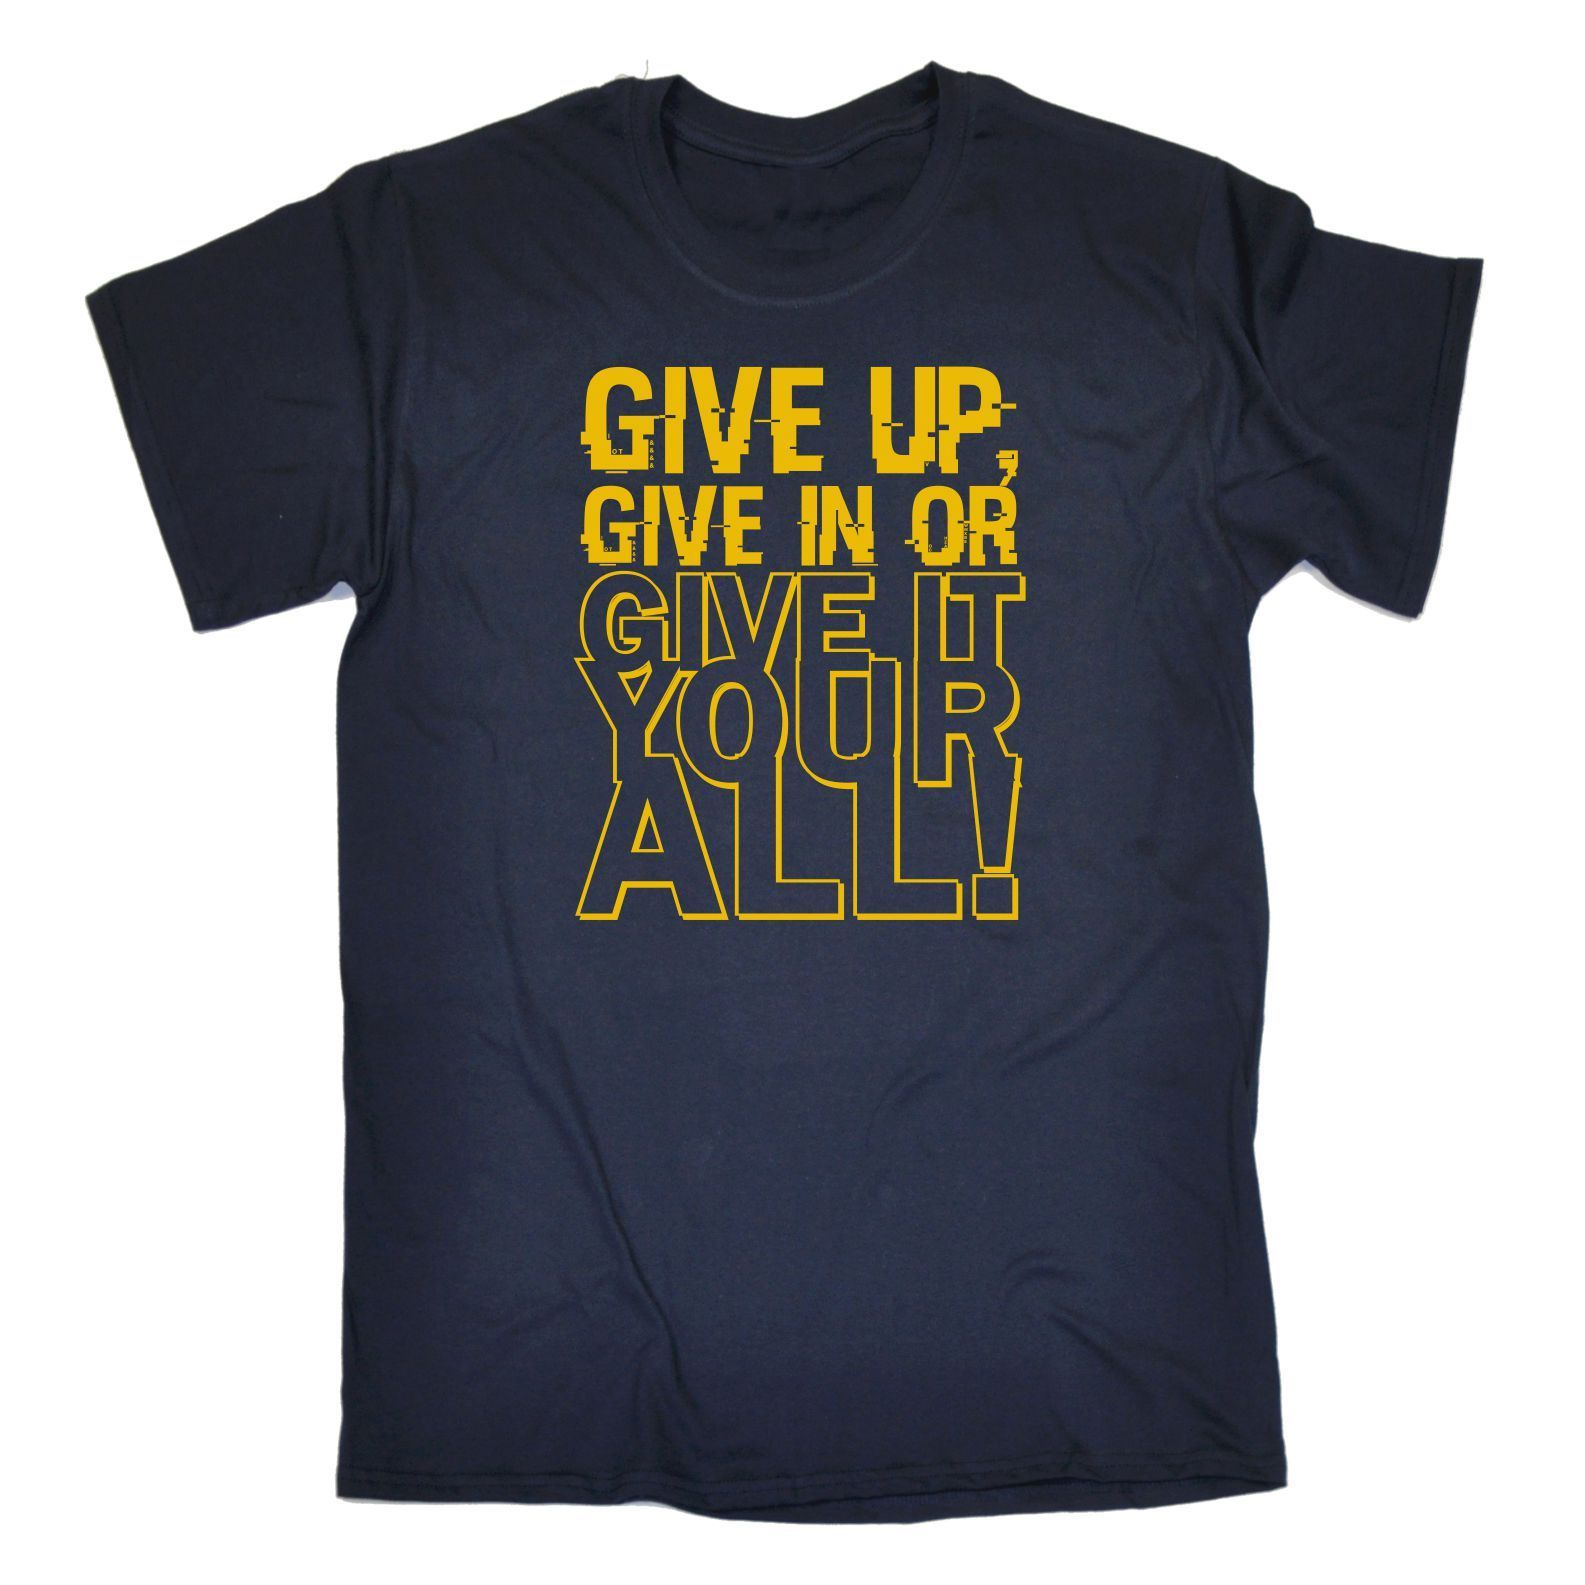 Give Up Give In or Give It Your All MENS T-SHIRT Tee Funny Birthday Motivation T Shirt Men Tees Brand Clothing Funny image